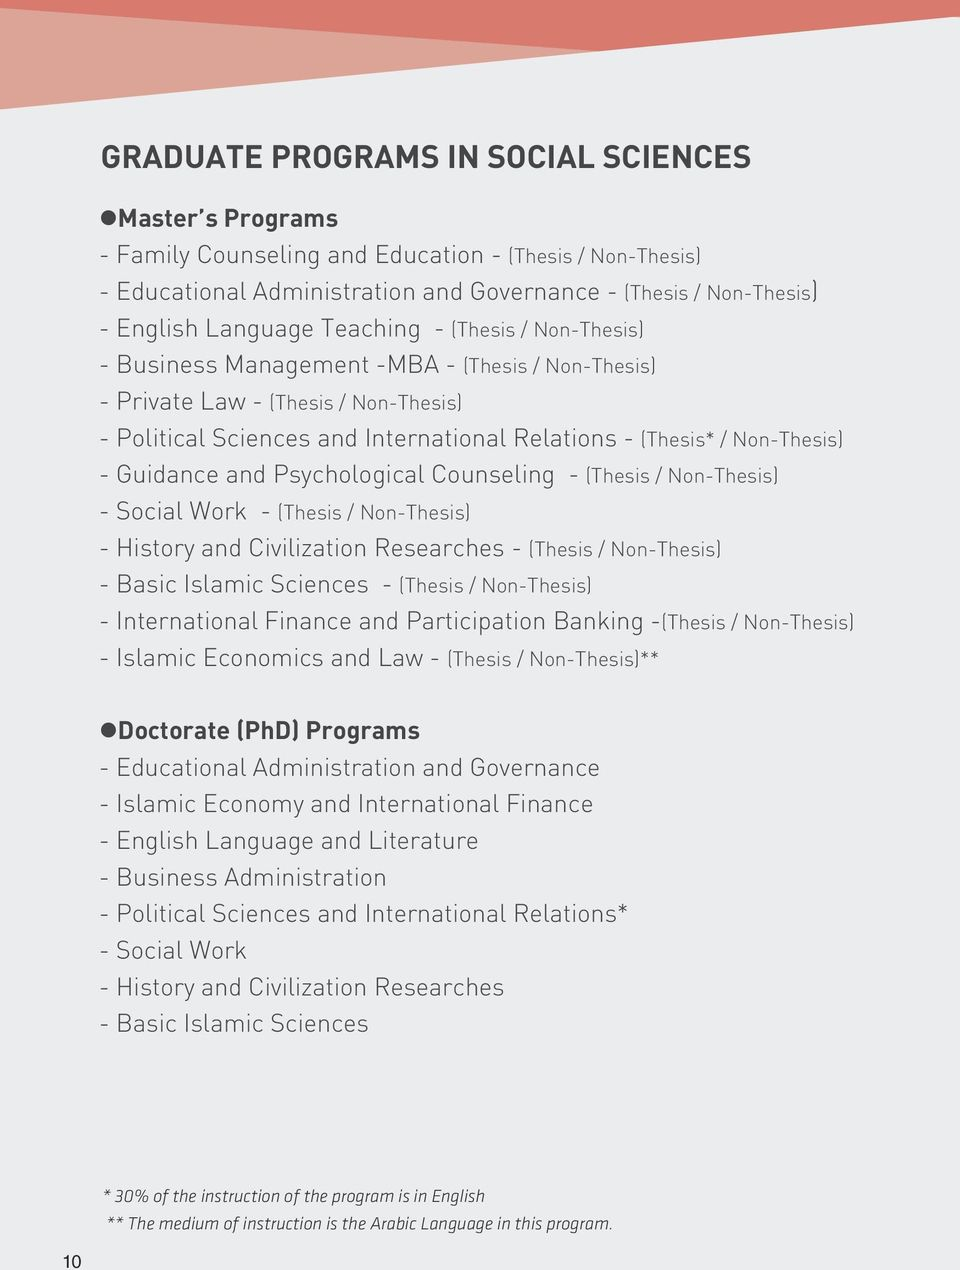 Guidance and Psychological Counseling - (Thesis / Non-Thesis) - Social Work - (Thesis / Non-Thesis) - History and Civilization Researches - (Thesis / Non-Thesis) - Basic Islamic Sciences - (Thesis /